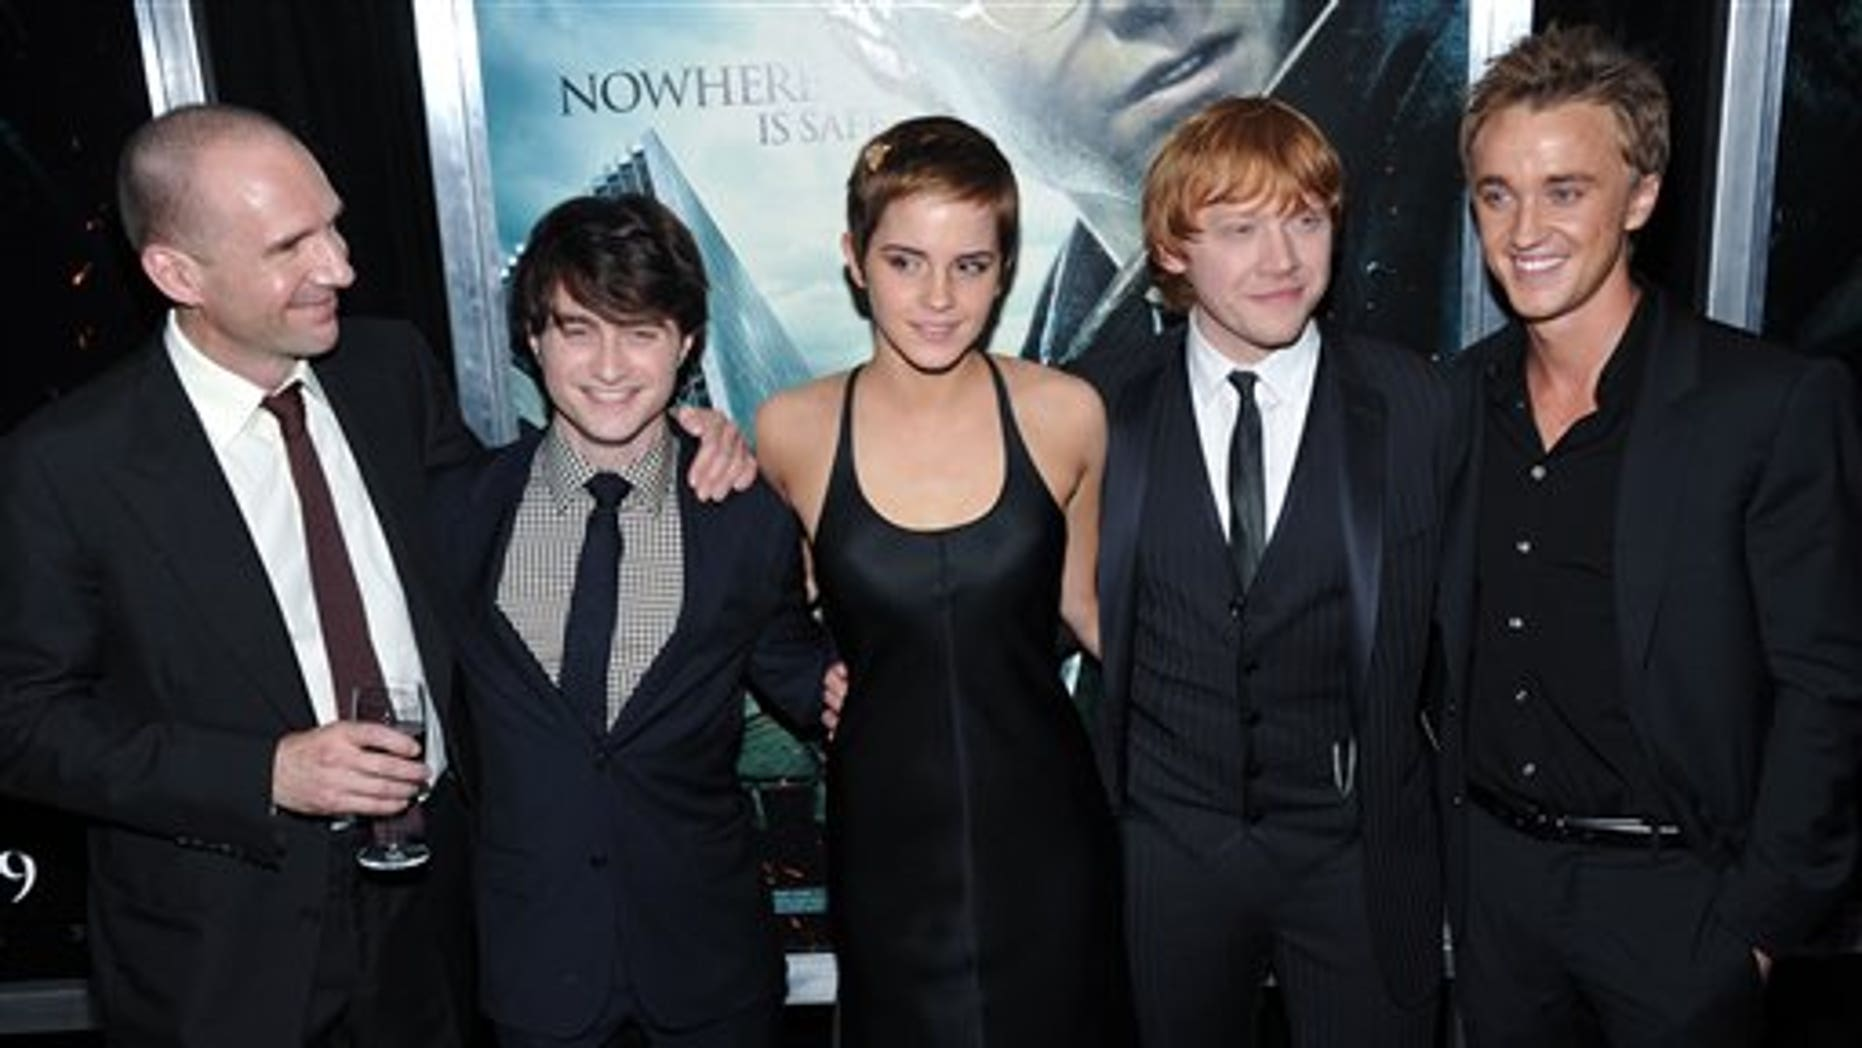 Actors, from left, Ralph Fiennes, Daniel Radcliffe, Emma Watson, Rupert Grint and Tom Felton attend the premiere of 'Harry Potter and the Deathly Hallows Part 1' at Alice Tully Hall on Monday, Nov. 15, 2010 in New York. (AP)